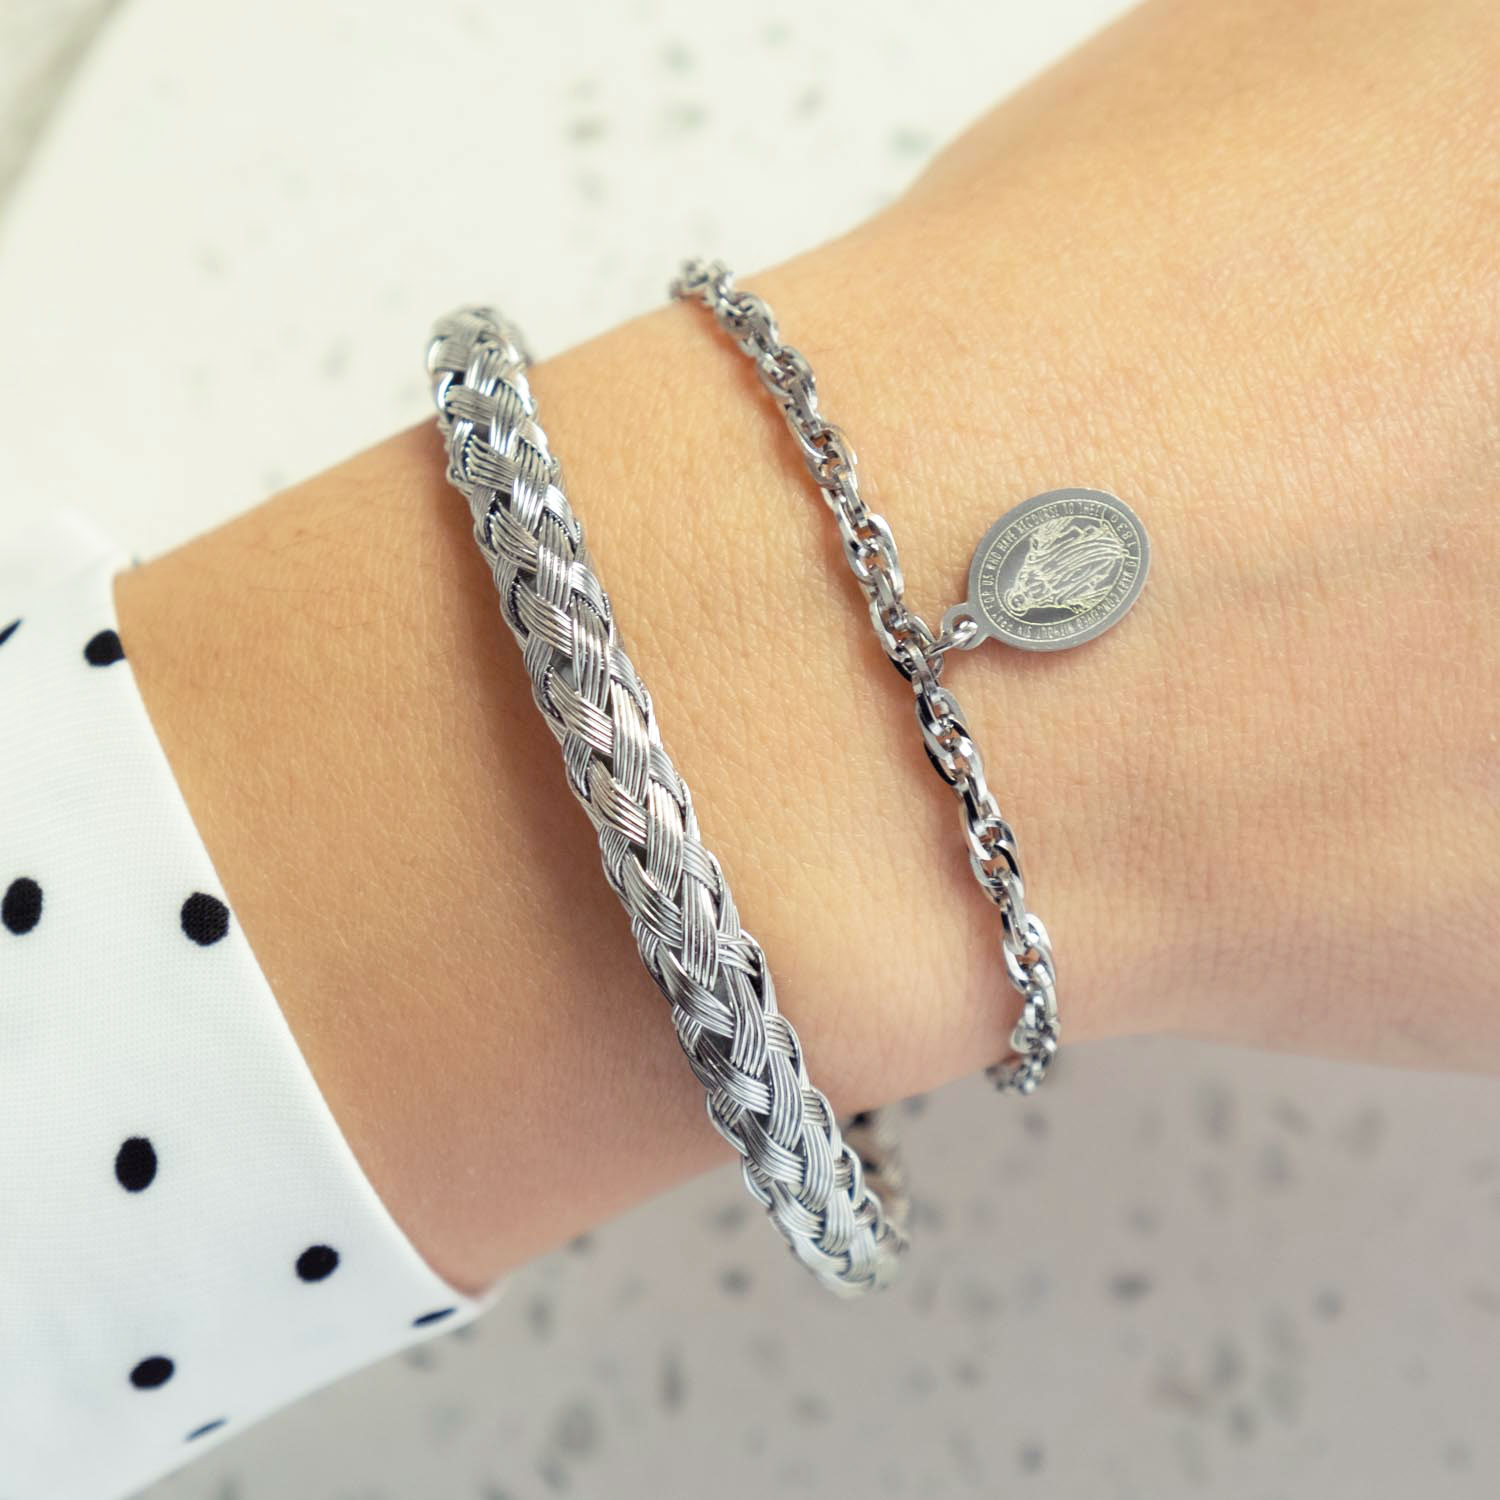 Braided bangle met maria armbandje en stippenblouse